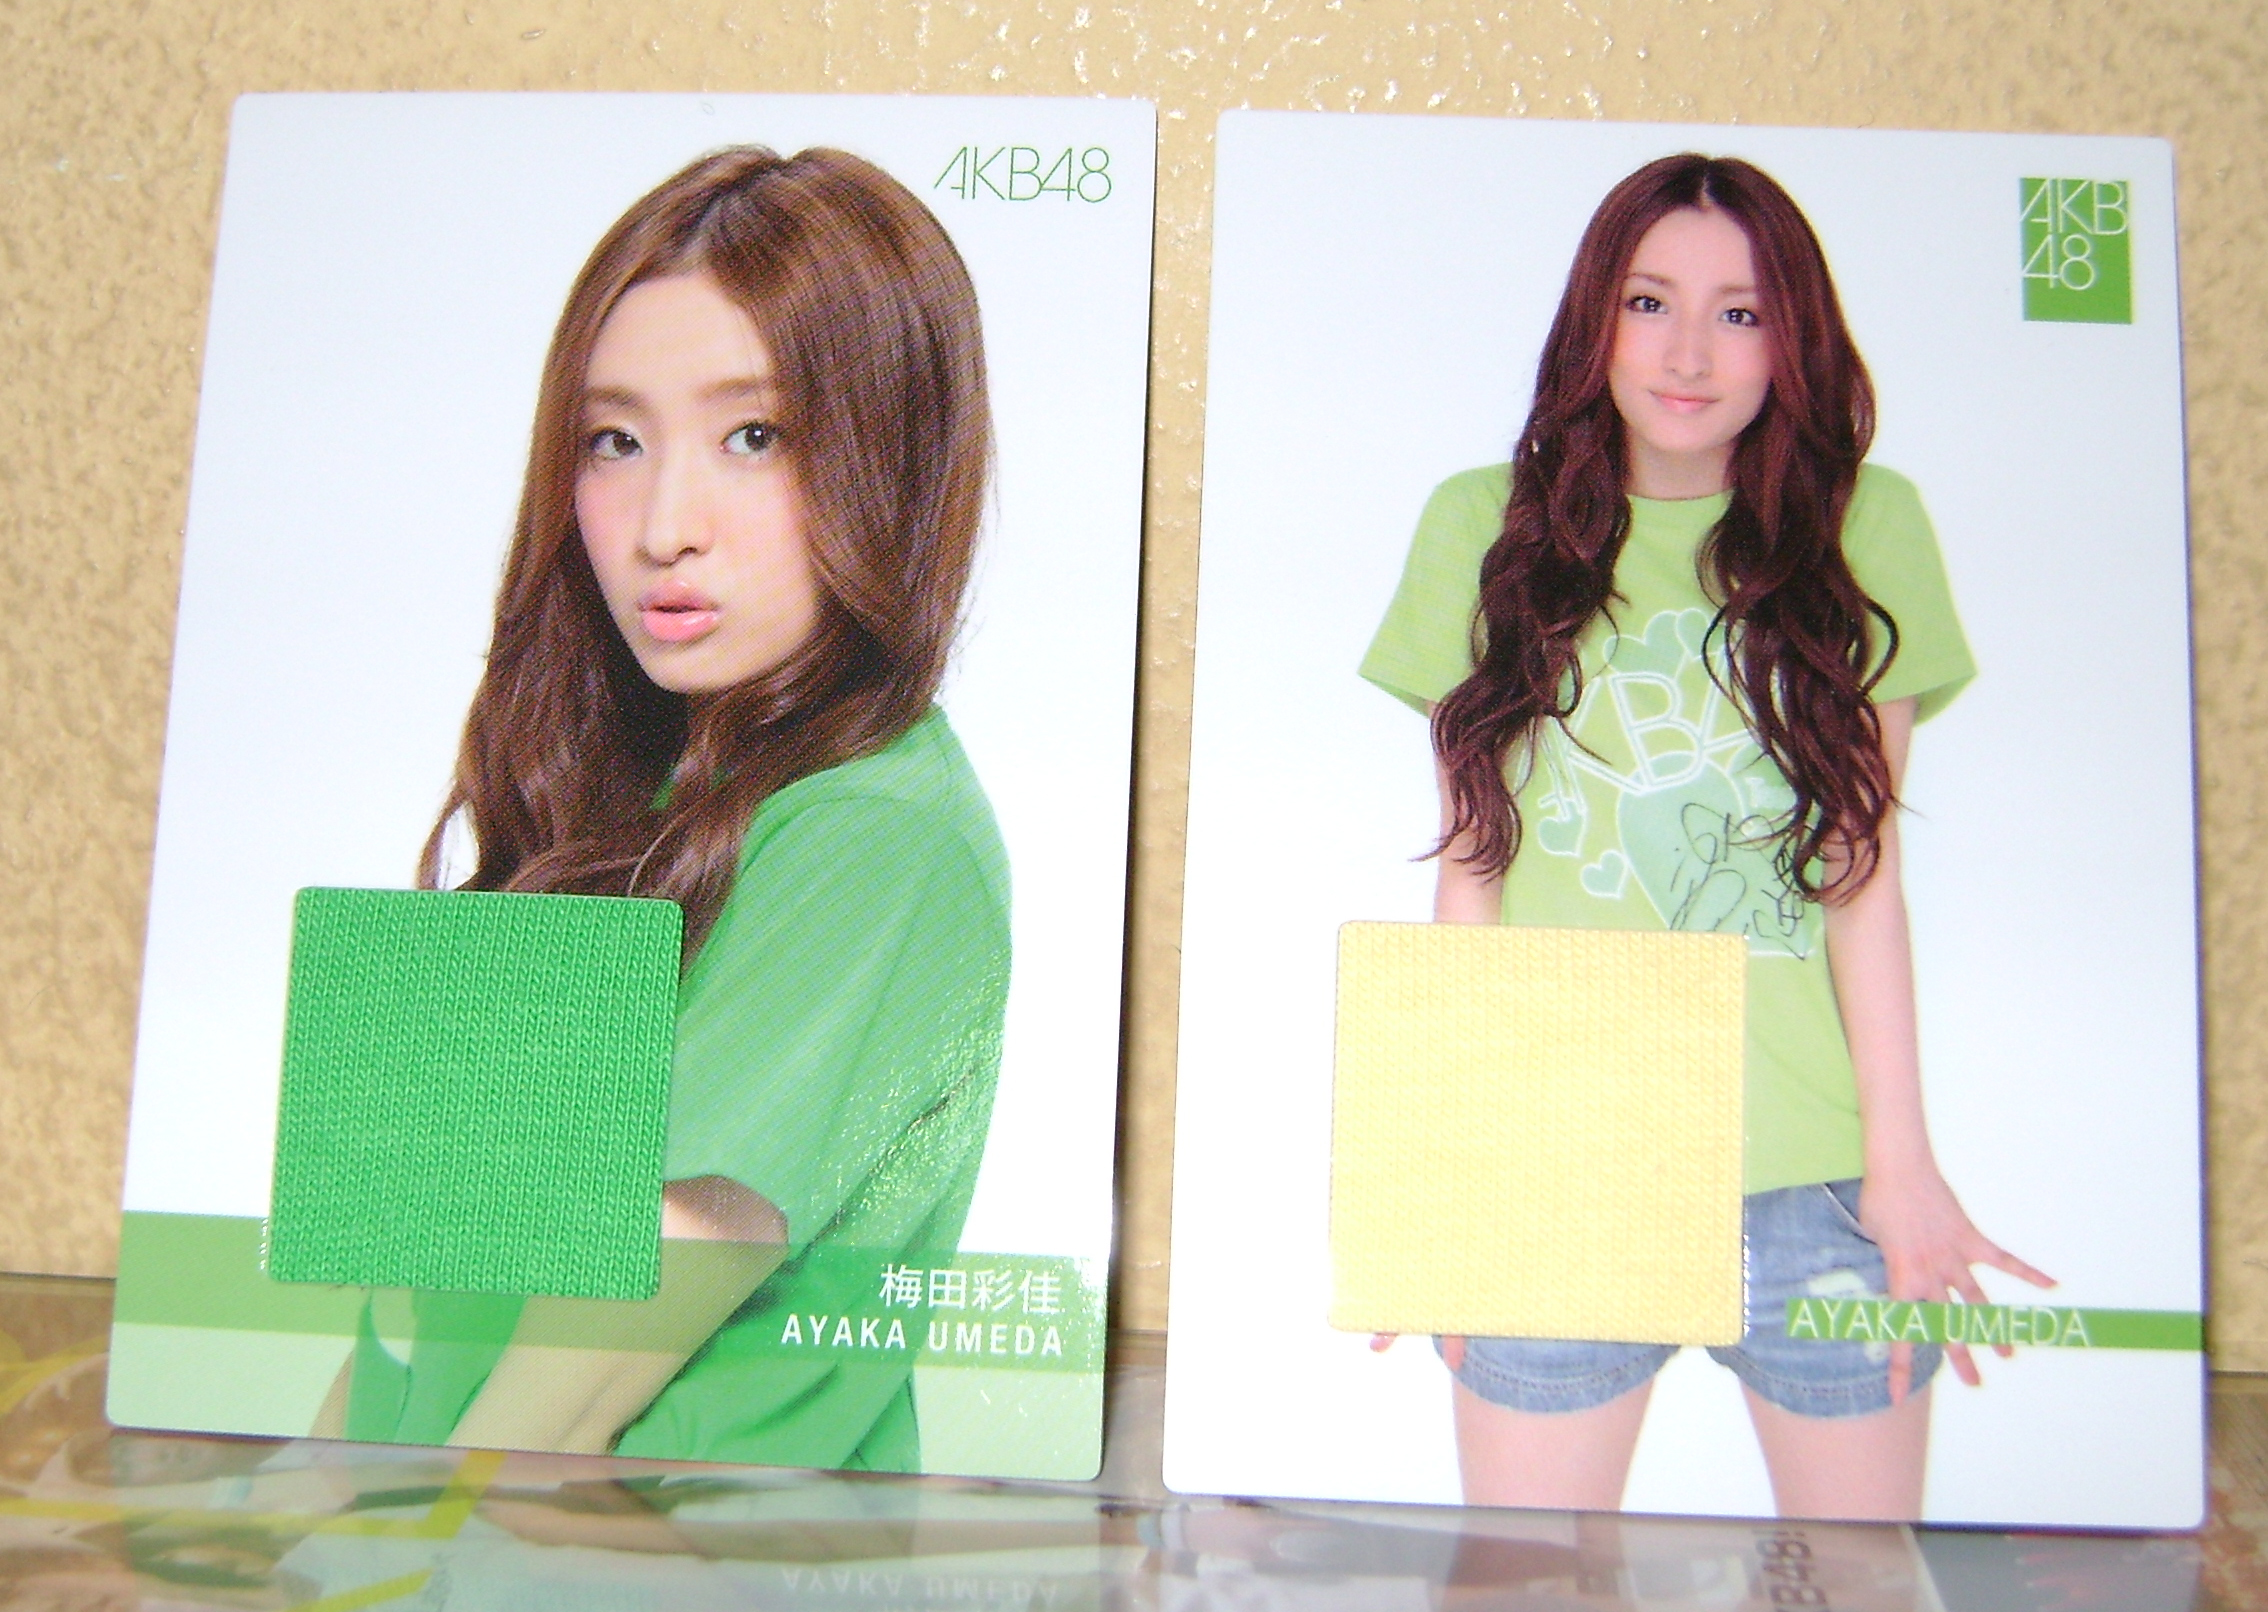 Ayaka swatch cards AKB48, A Musical Collection; Part 5!